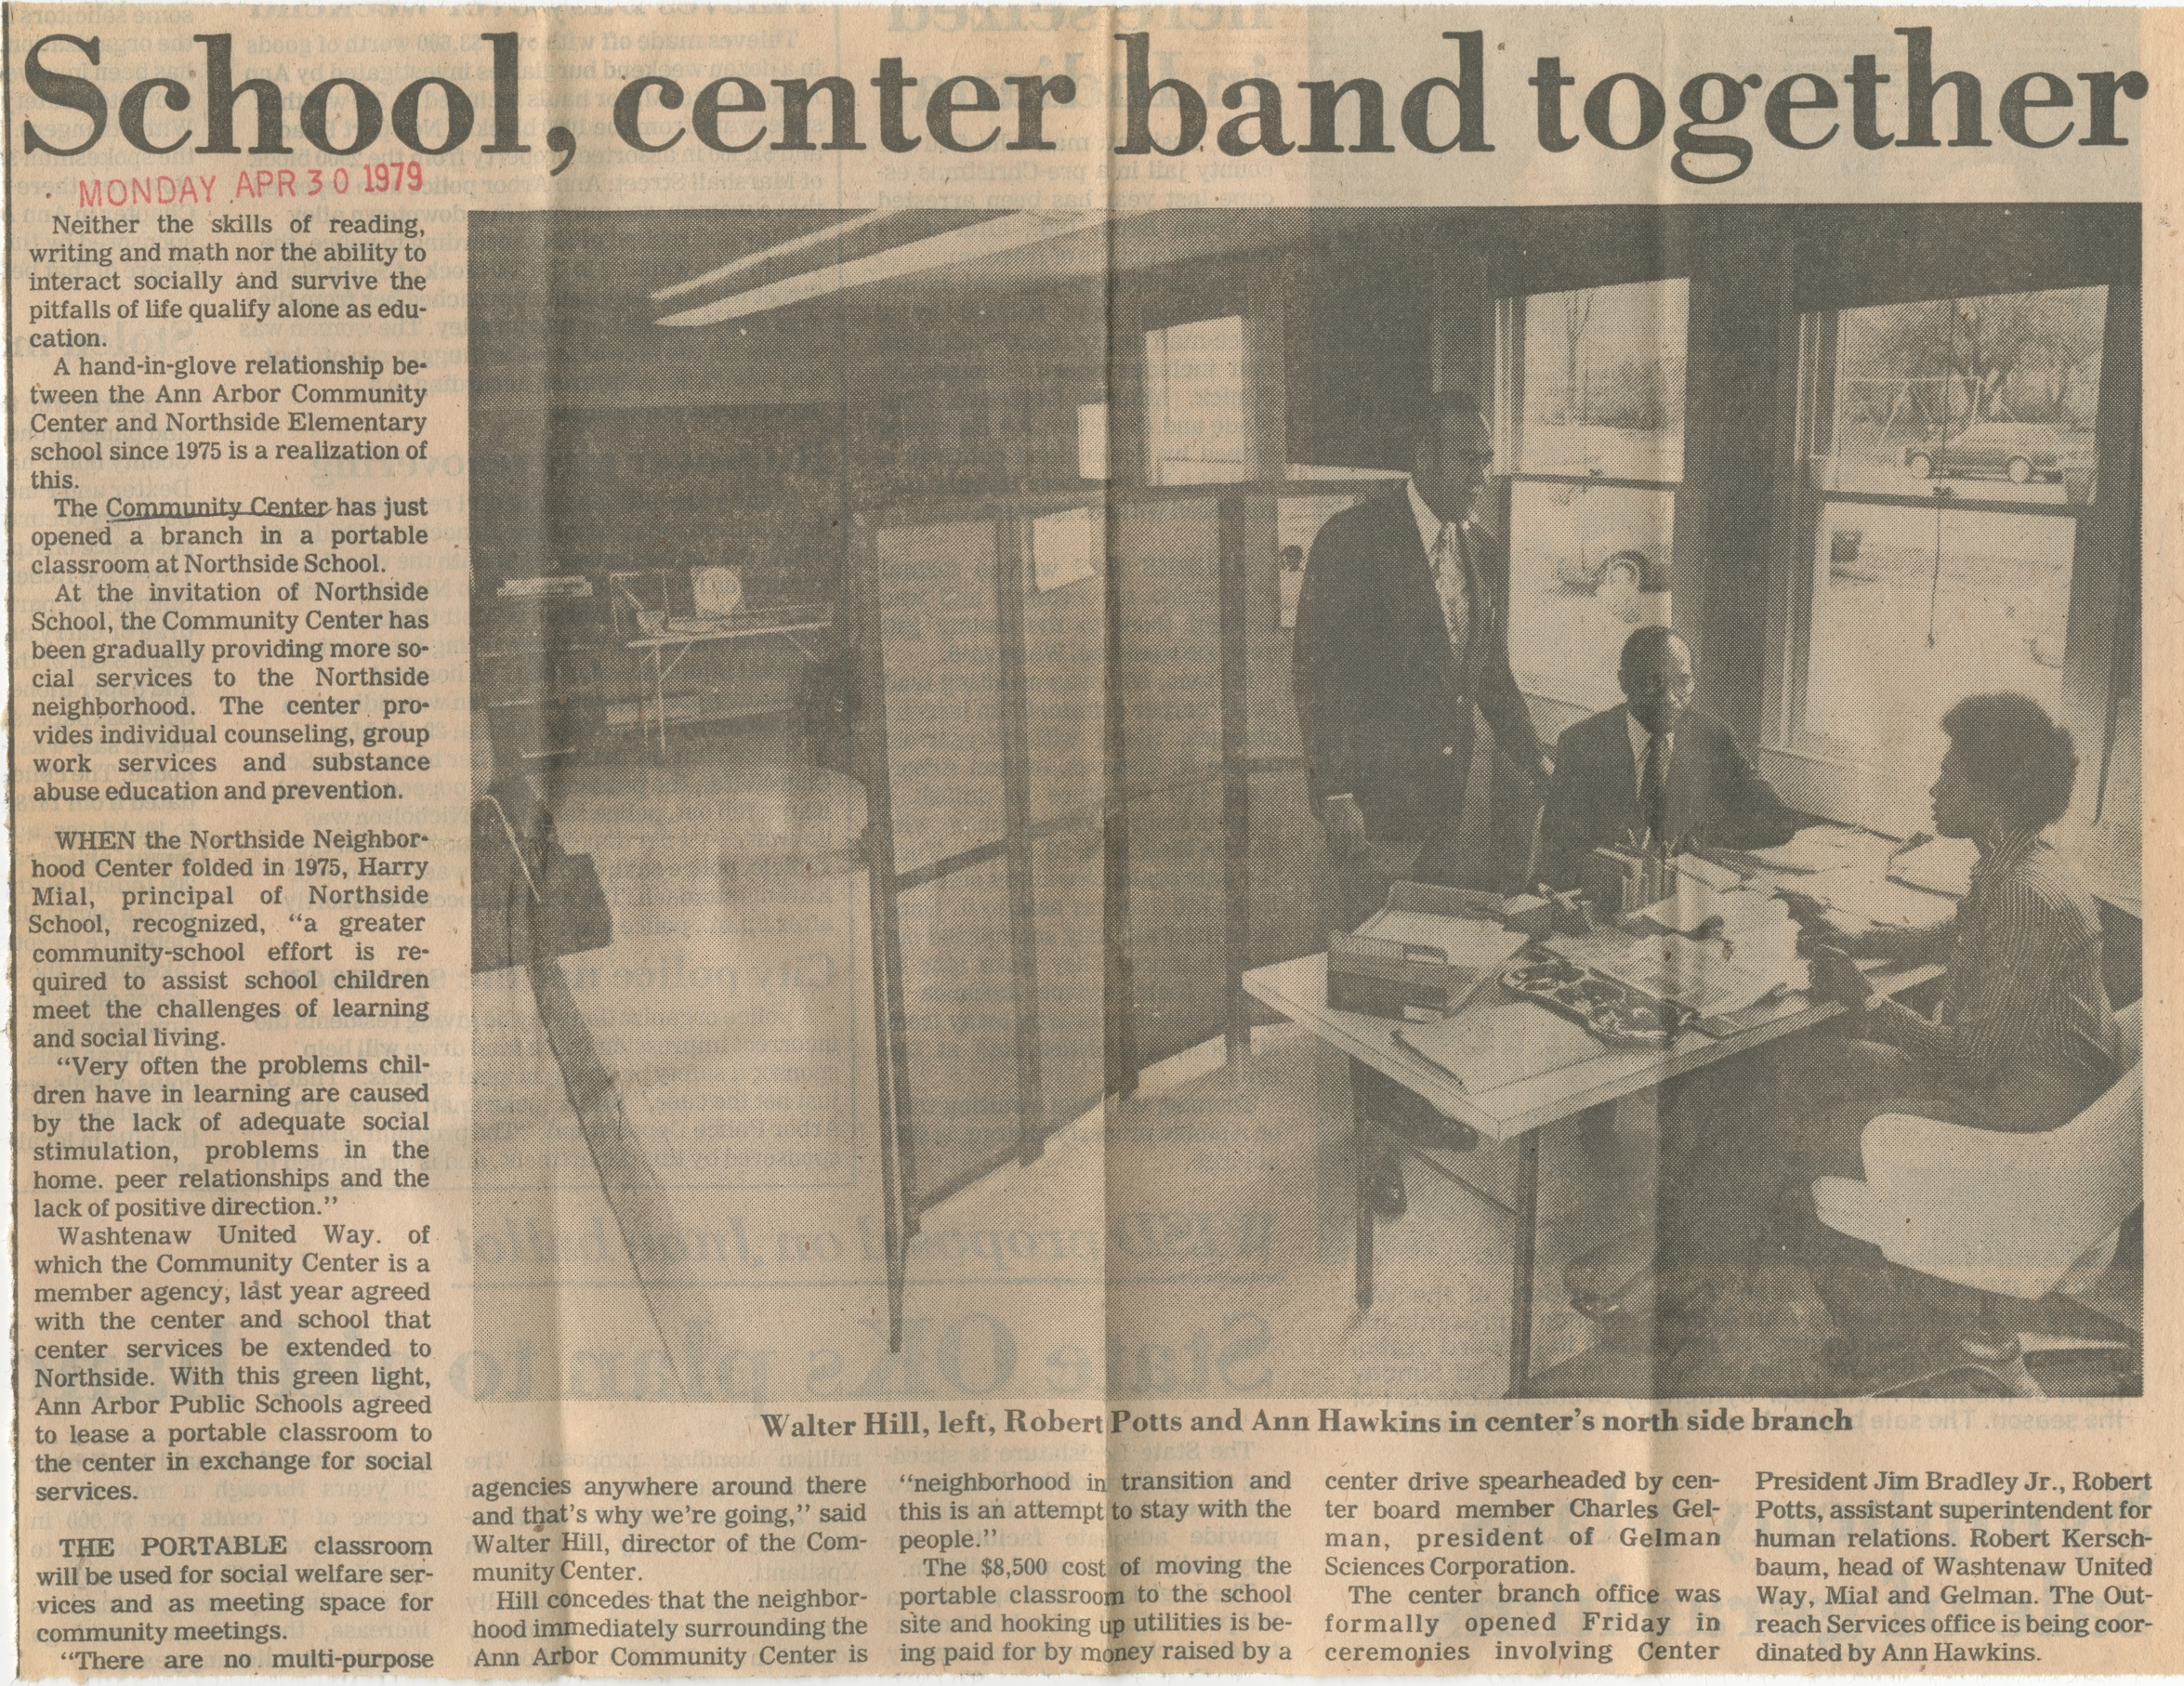 School, Center Band Together image